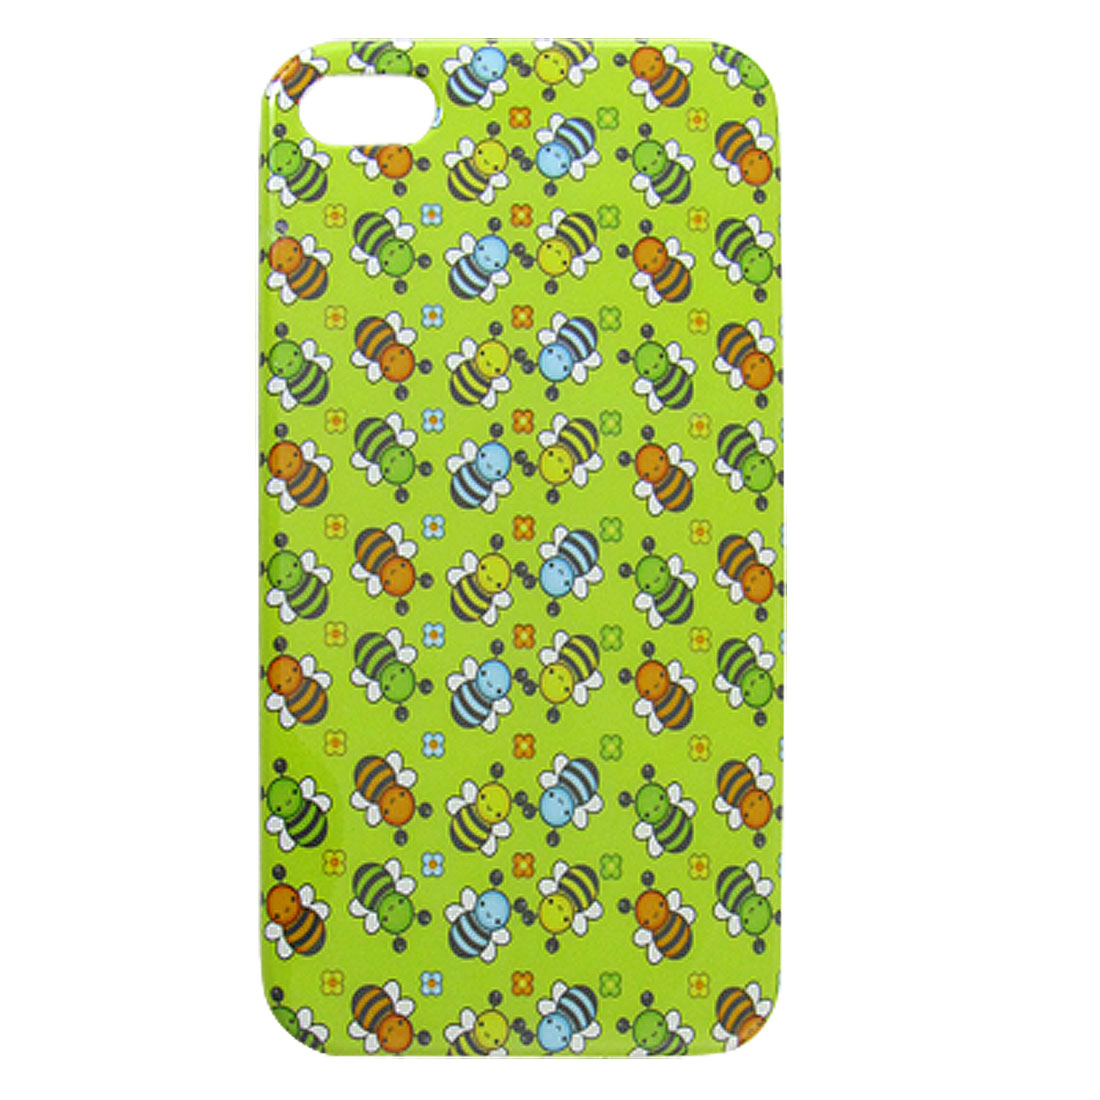 Cartoon Bee Pattern IMD Hard Back Case Cover Green for iPhone 4 4G 4S